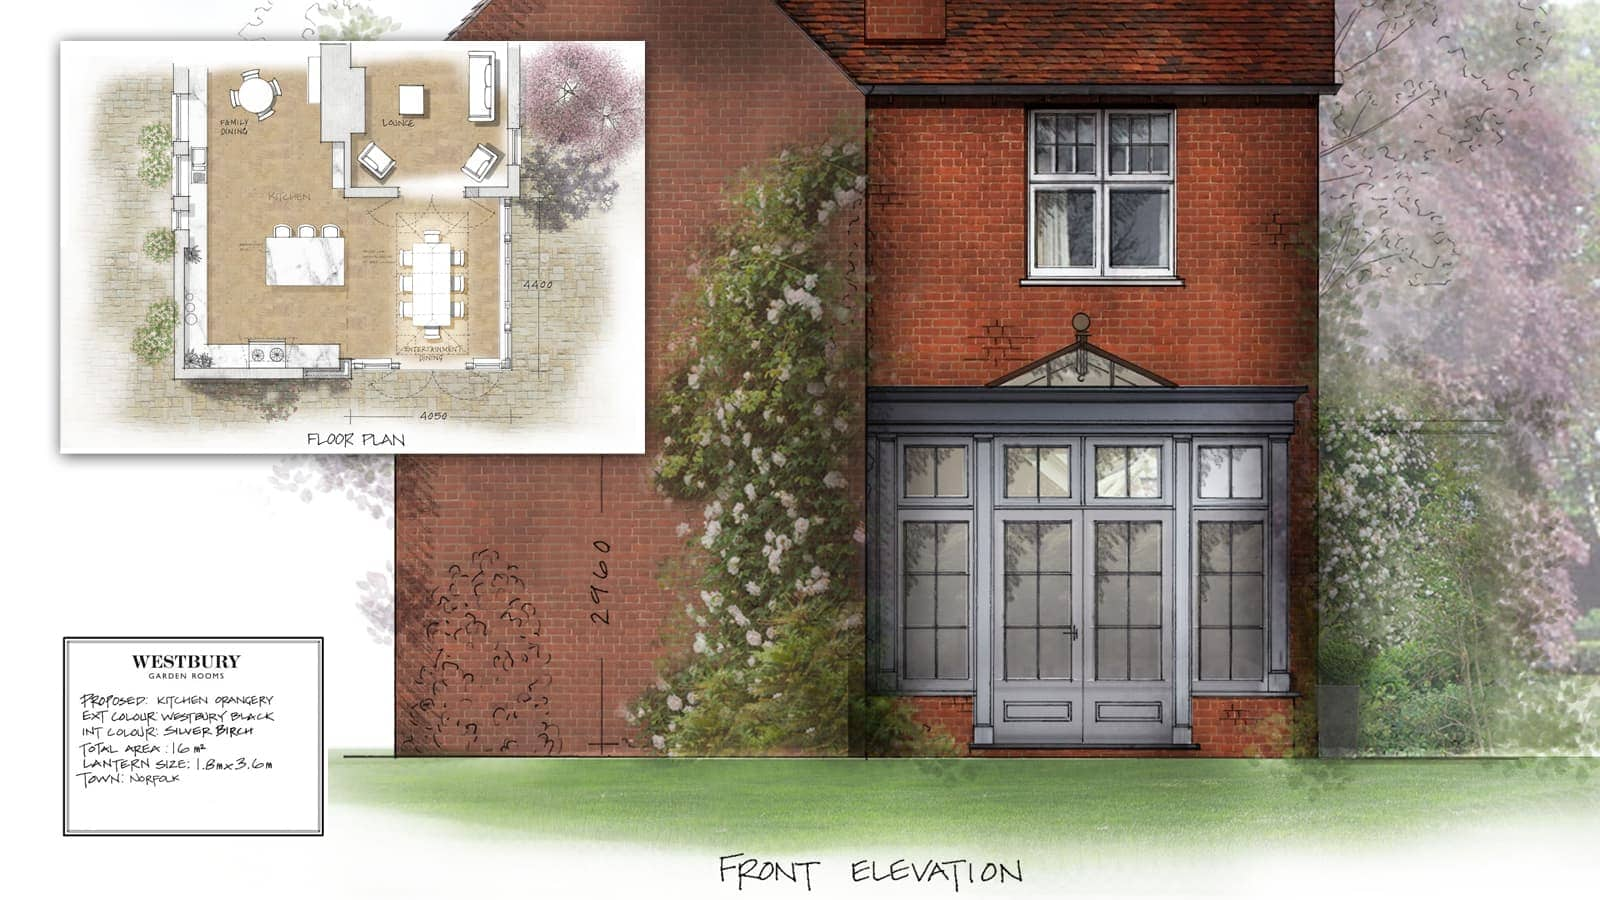 Orangery extension designed to complement the Edwardian features of this beautiful property